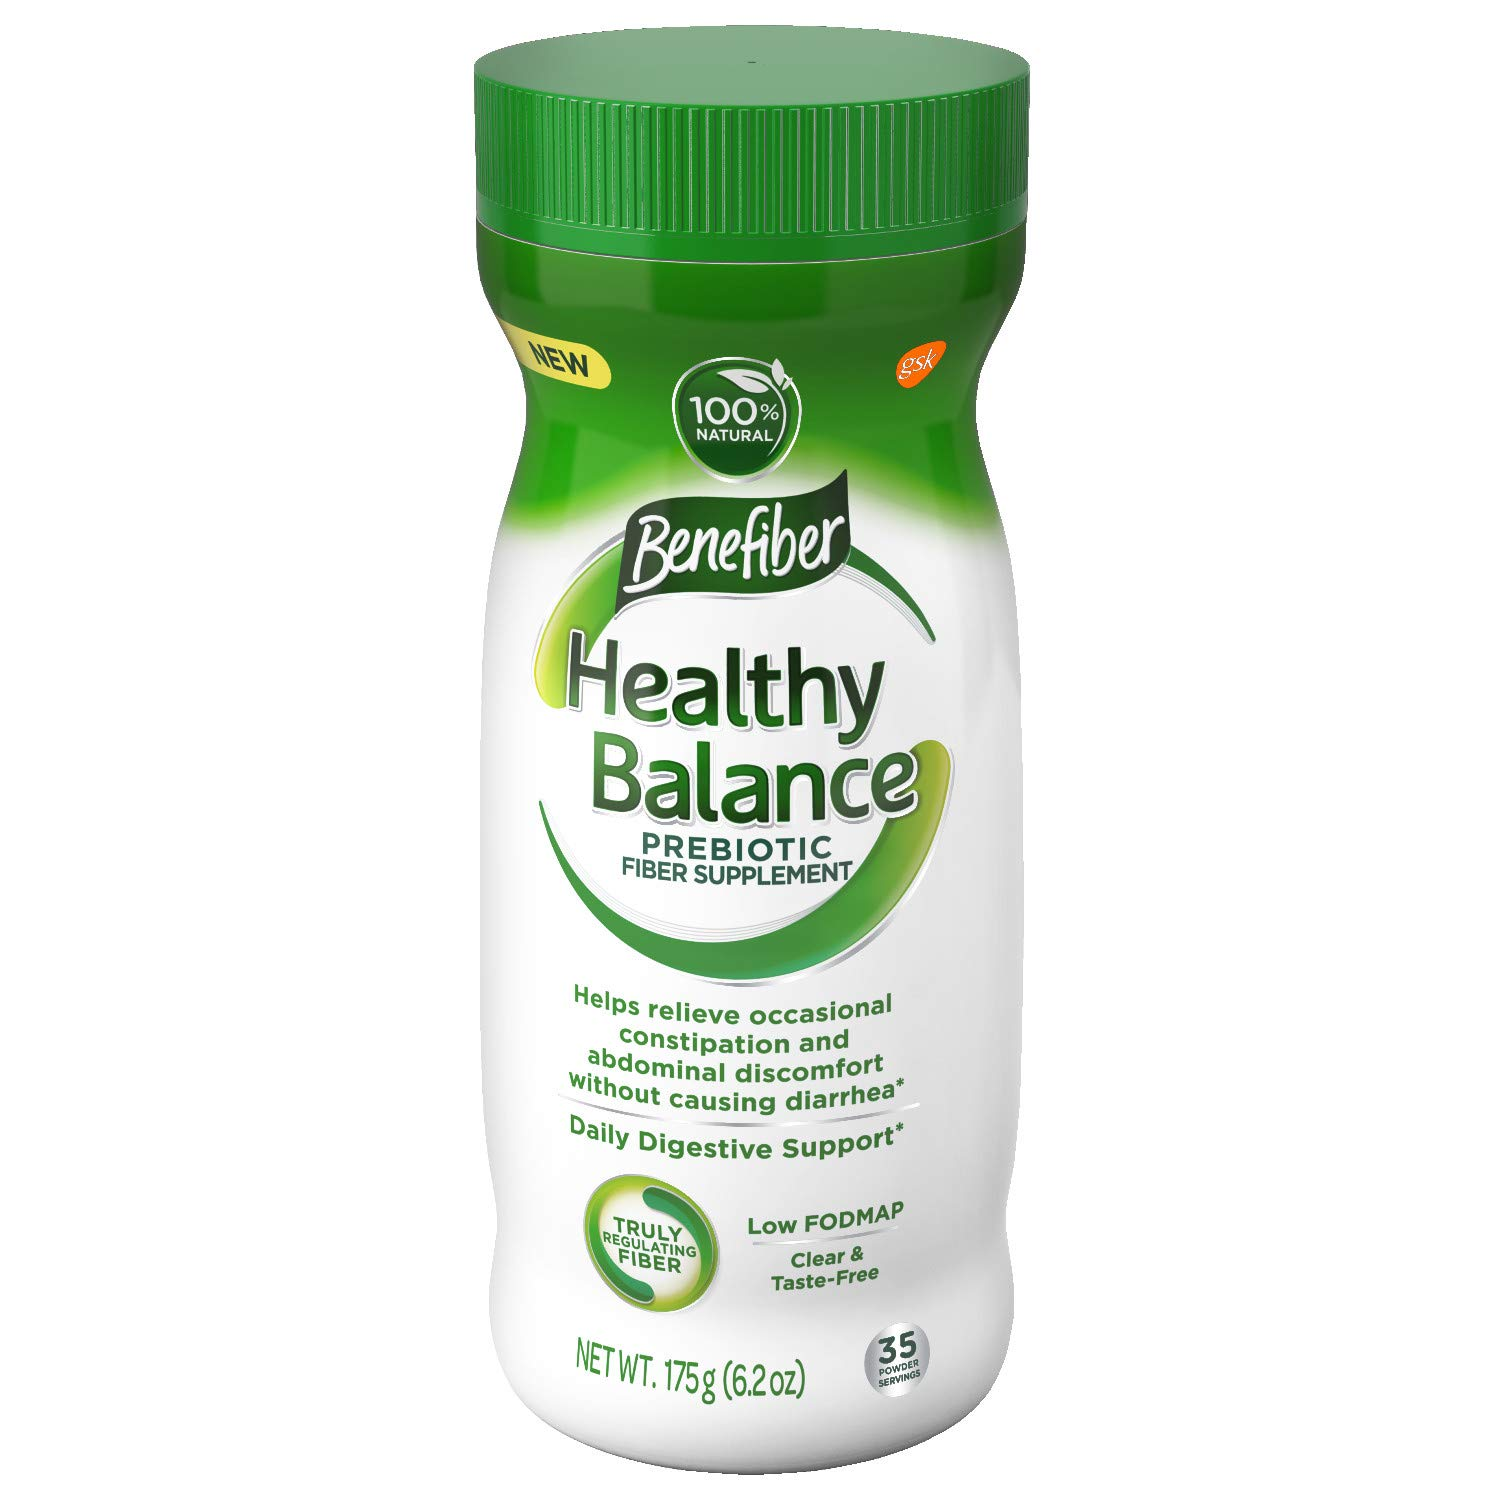 Benefiber Healthy Balance Daily Prebiotic Dietary Fiber Supplement Powder for Digestive Health, Clear and Taste-Free, 35 Servings of Fiber Powder, 6.2 oz by Benefiber